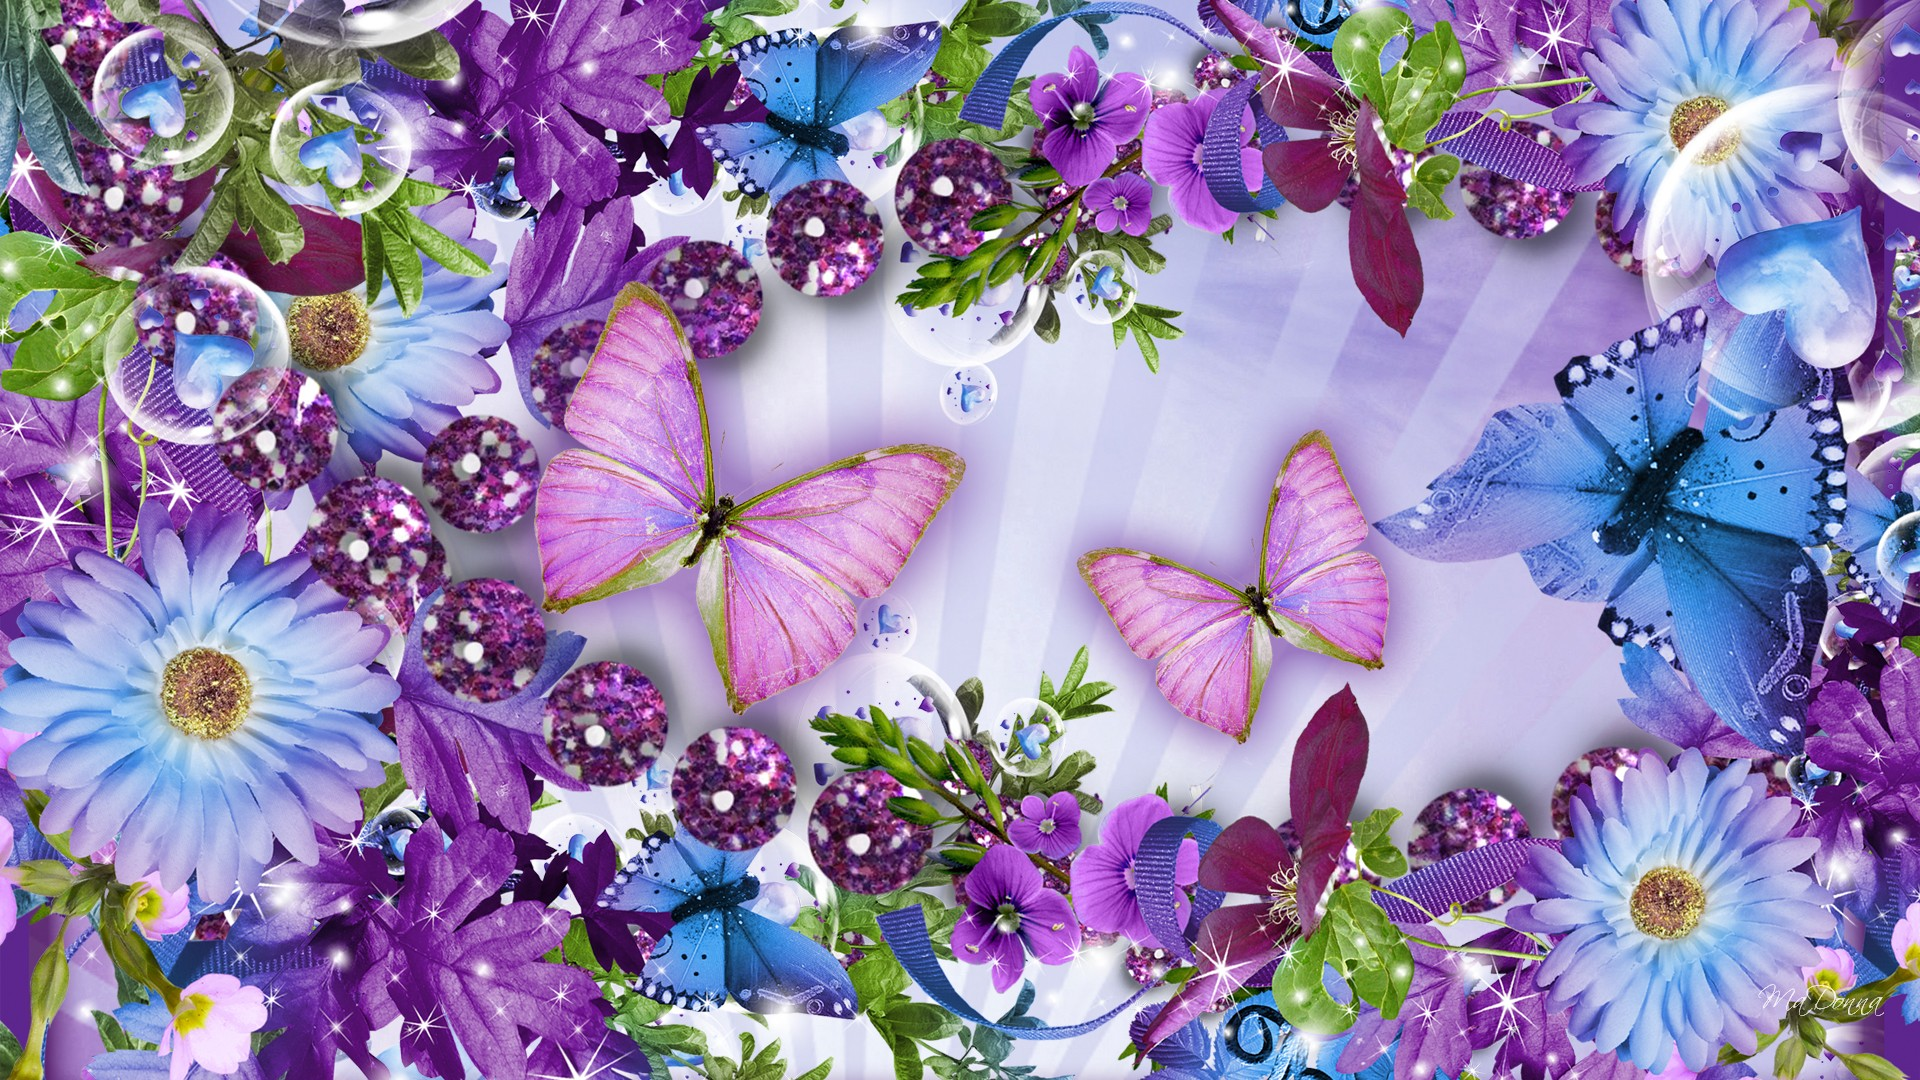 Flowers And Butterflies Photos Free Download By Kriemhilde Milbourn